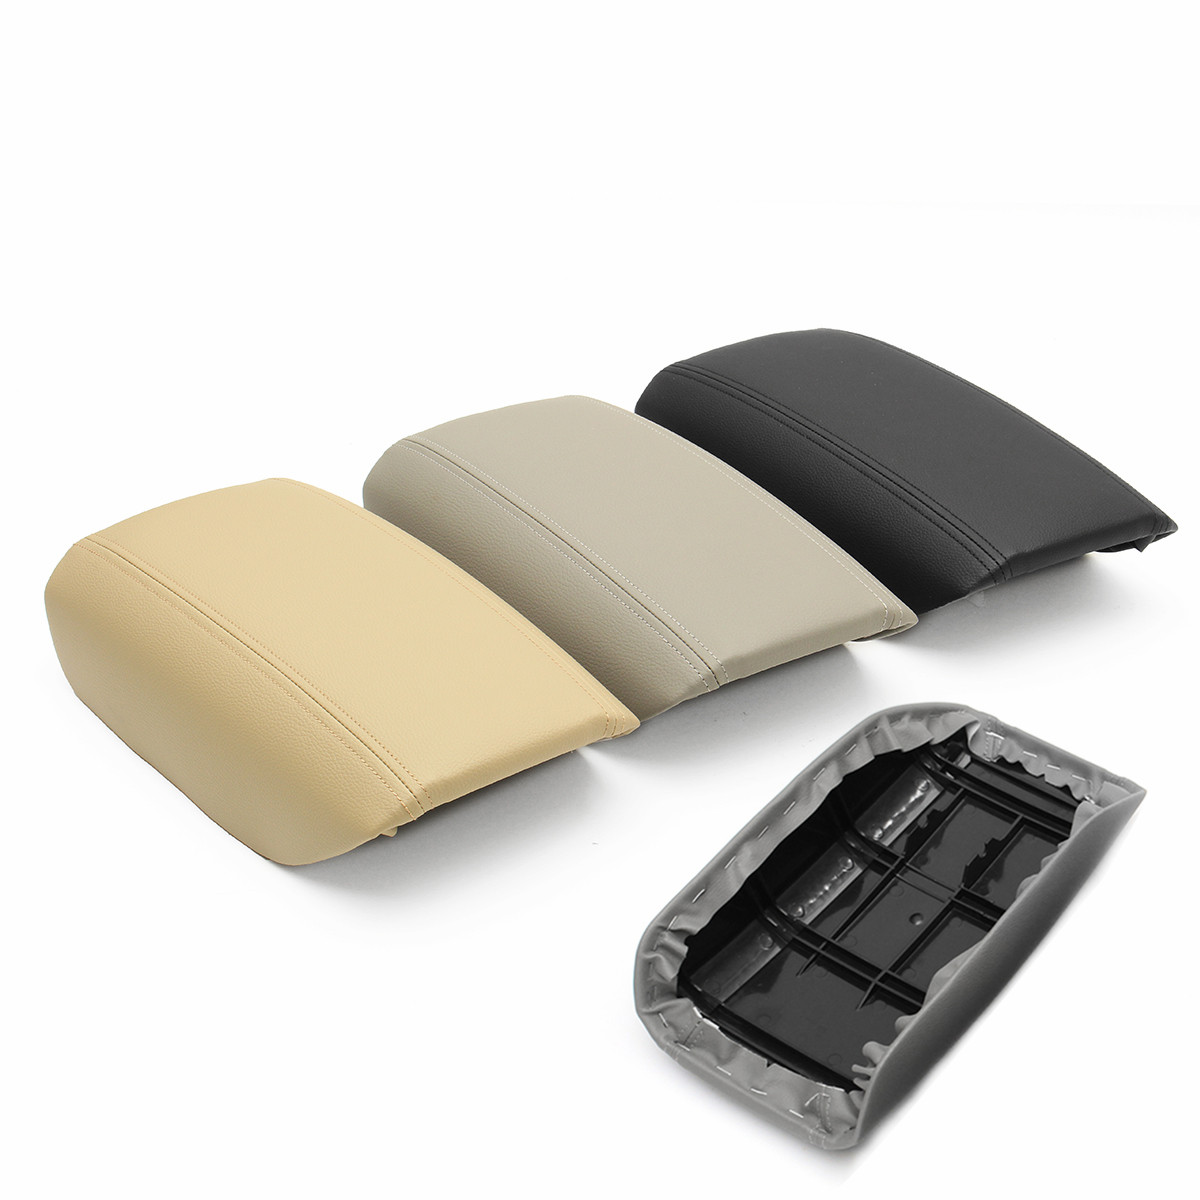 Car Armrest Cover Leather Center Console Lid For Volvo S80 1999-2006 Black Gray Beige center console armrest storage box elbow supporting for peugeot 2008 3008 1007 2006 2013 2014 2015 2016 2017 black gray beige